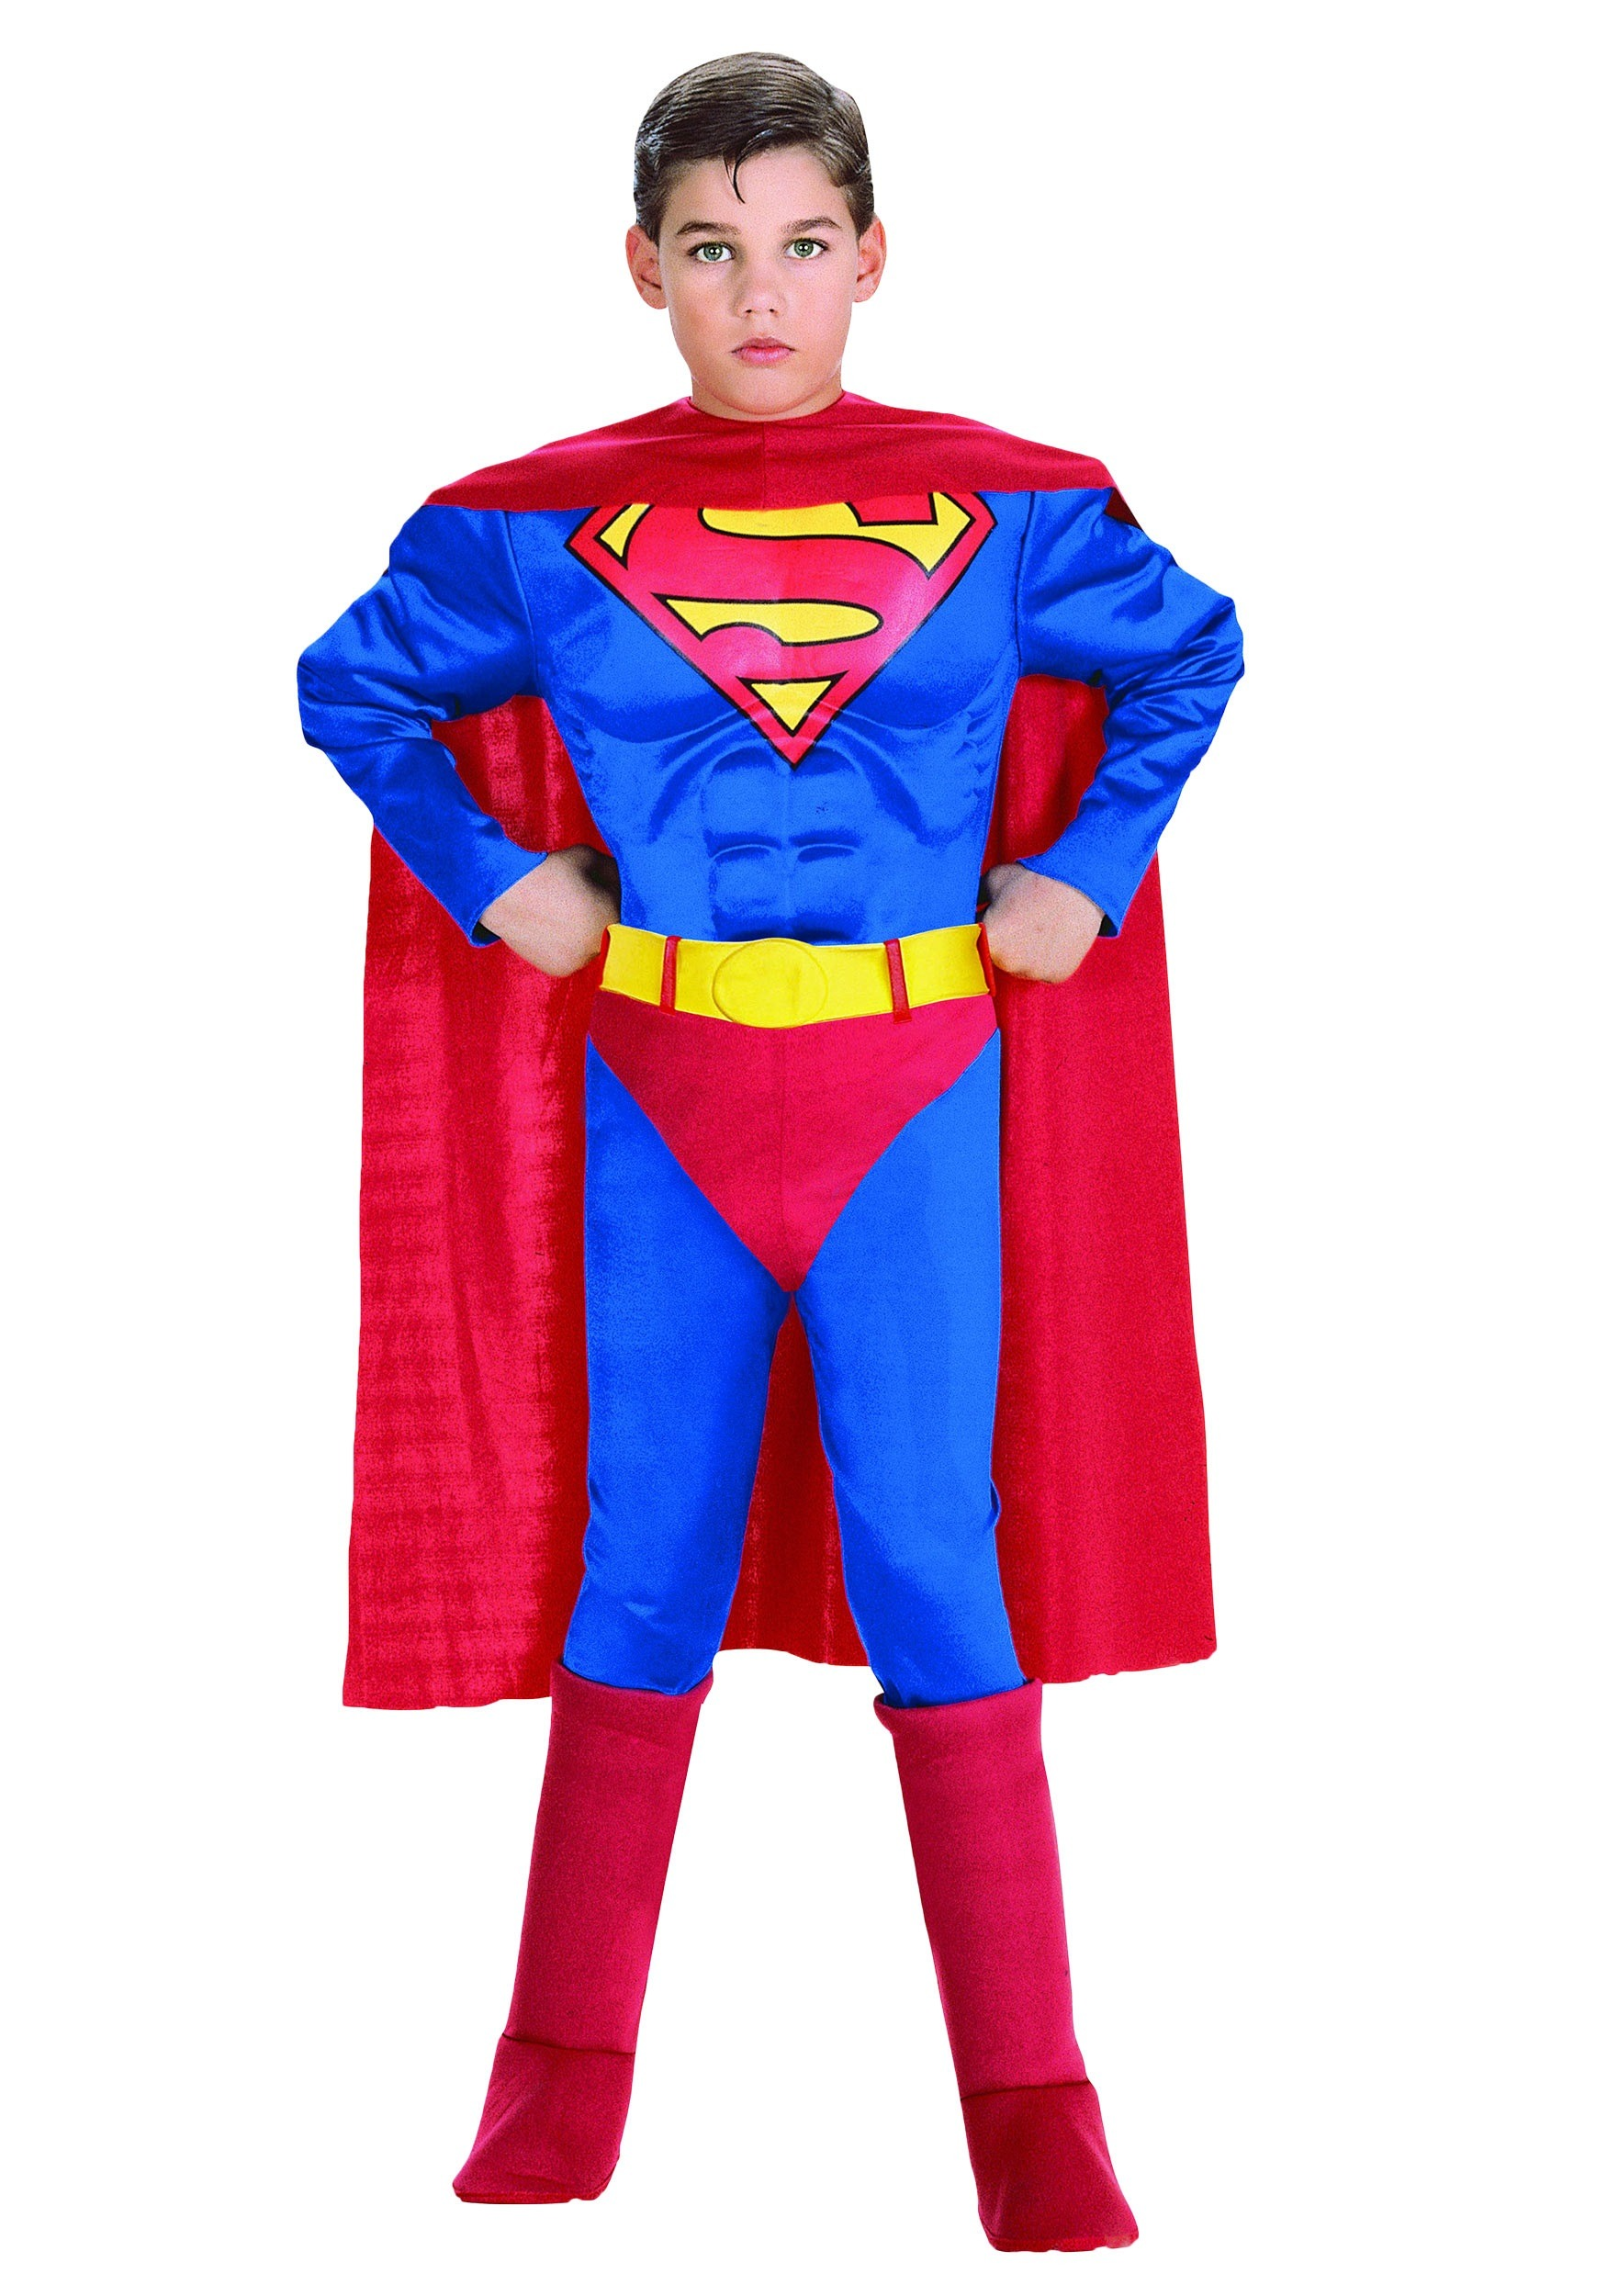 Shop for superman costumes for kids online at Target. Free shipping on purchases over $35 and save 5% every day with your Target REDcard.